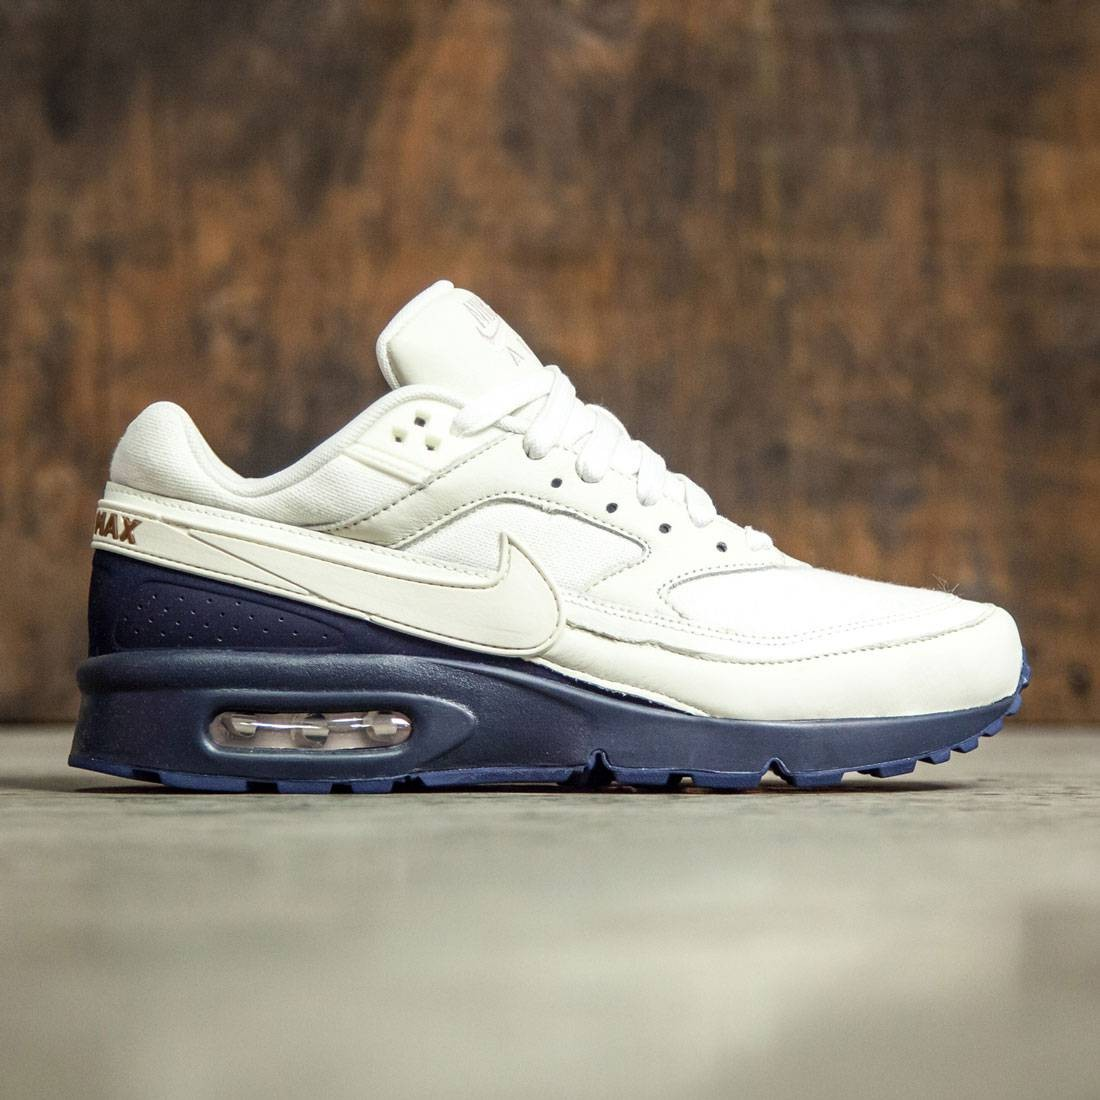 Brown Air Nike Sail Max Navy Ale Midnight Bw Men Premiumsail lc1J3uTFK